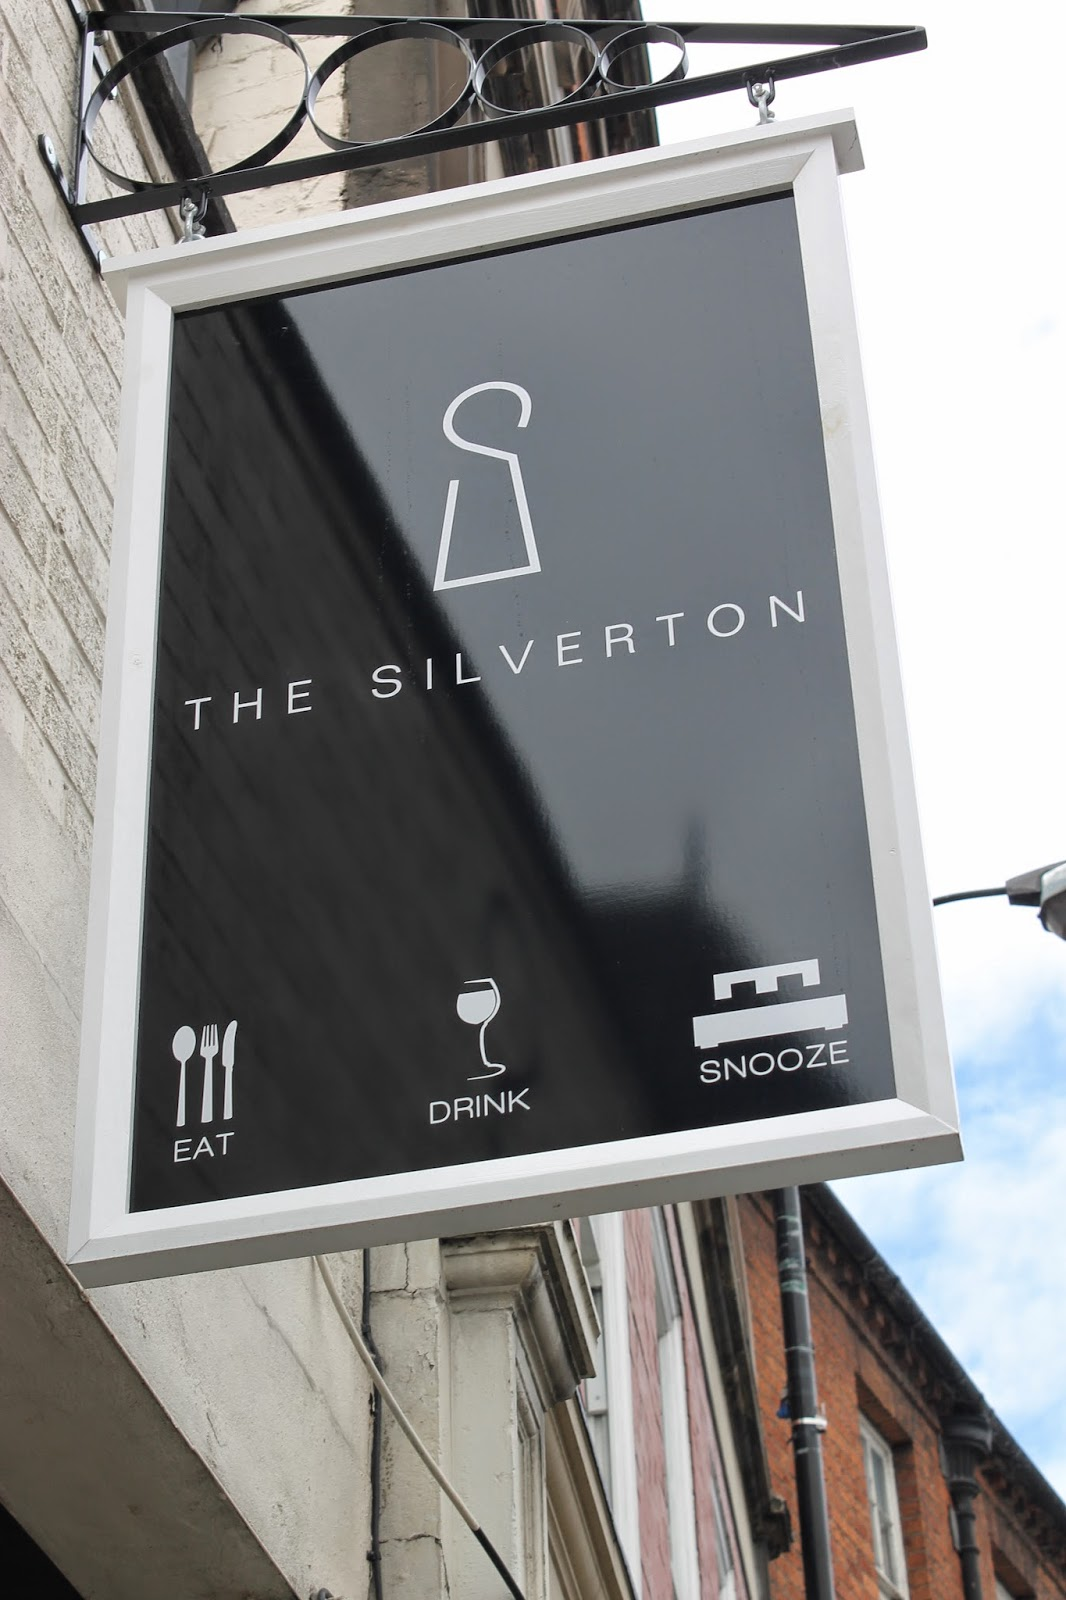 The Silverton Shrewsbury